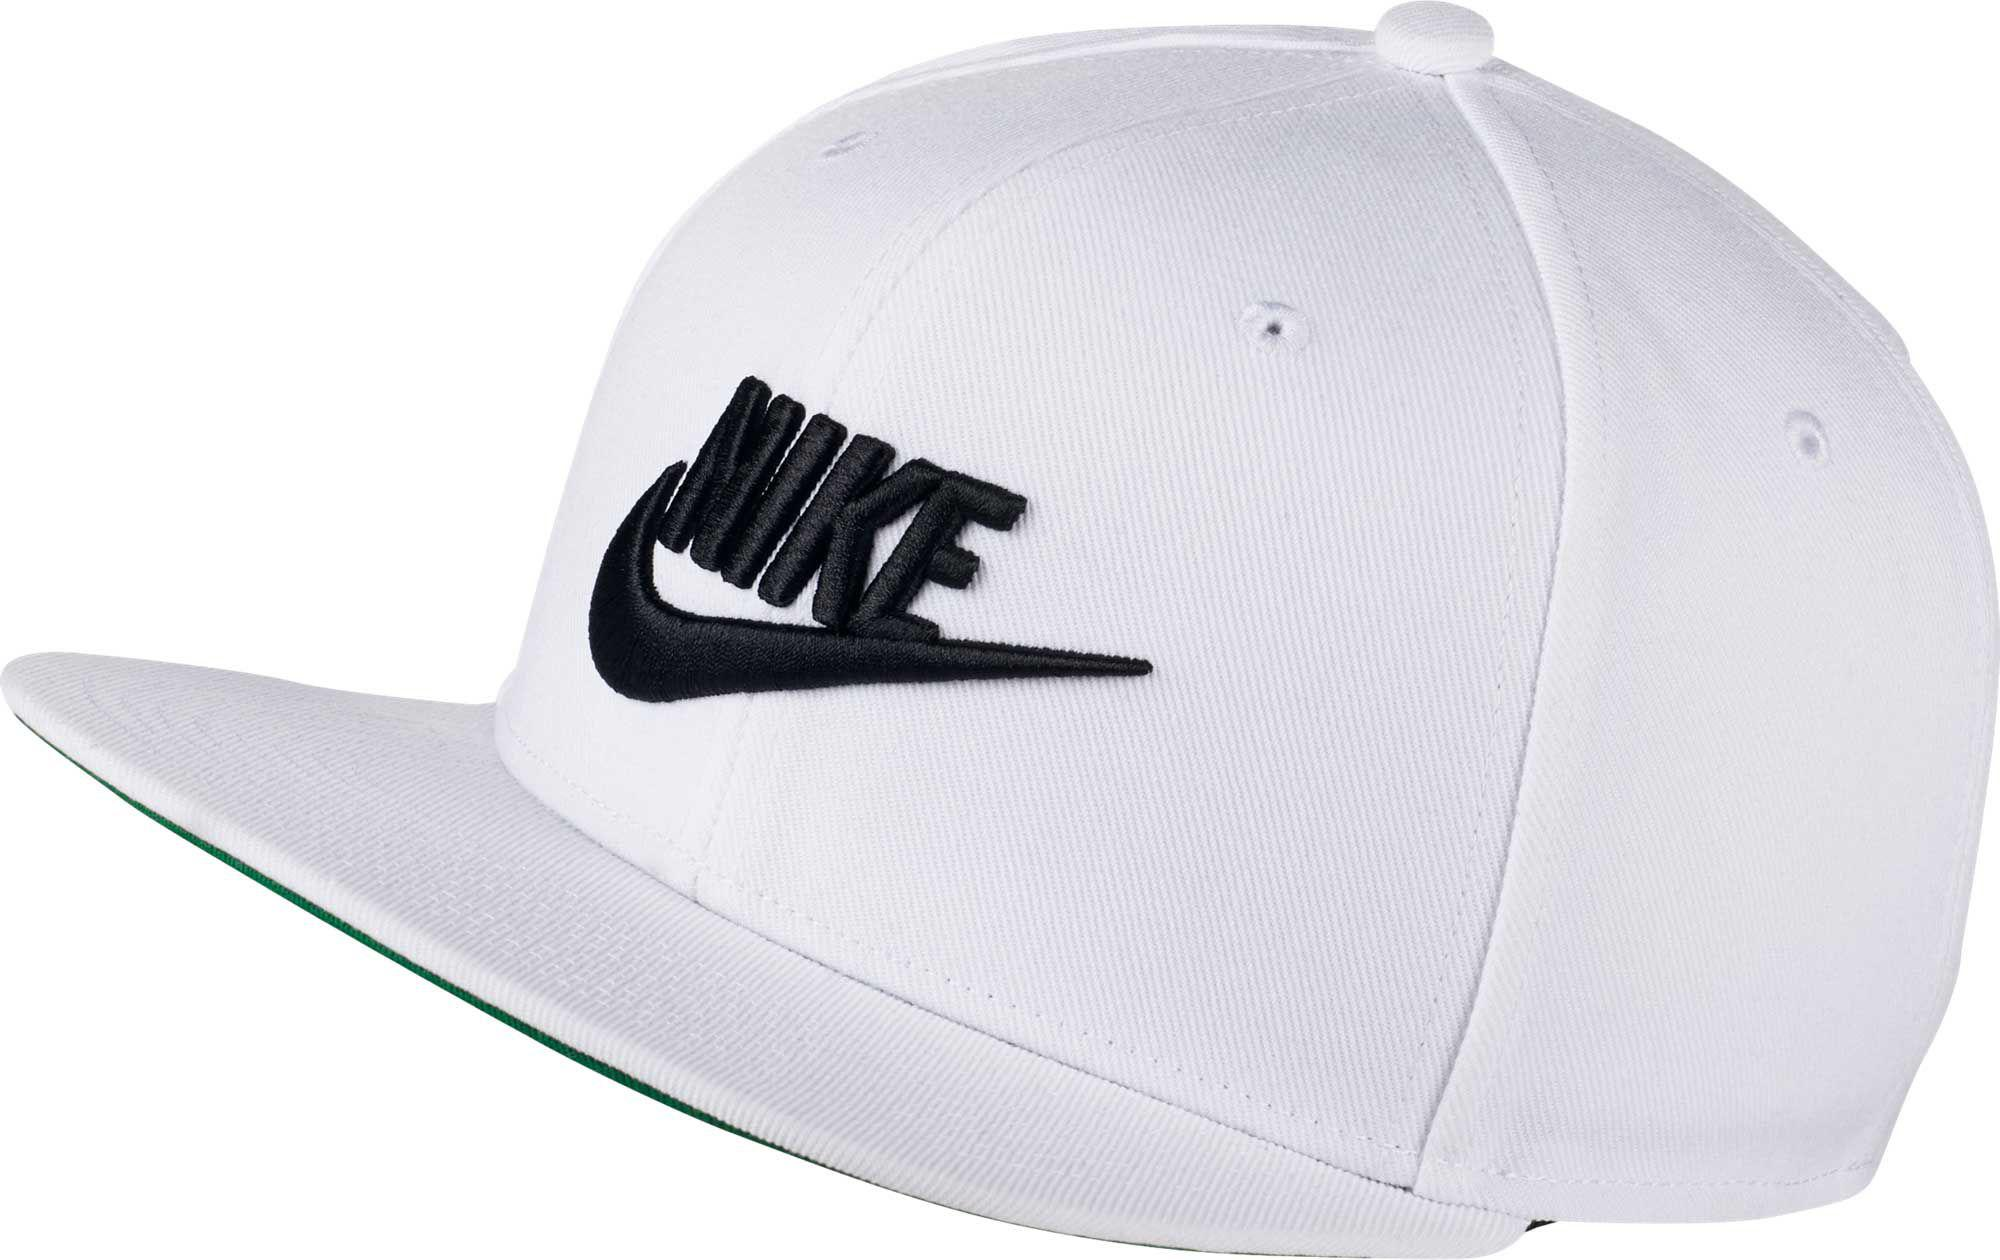 reputable site 02ca3 57a46 Lyst - Nike Sportswear Pro Adjustable Hat in White for Men